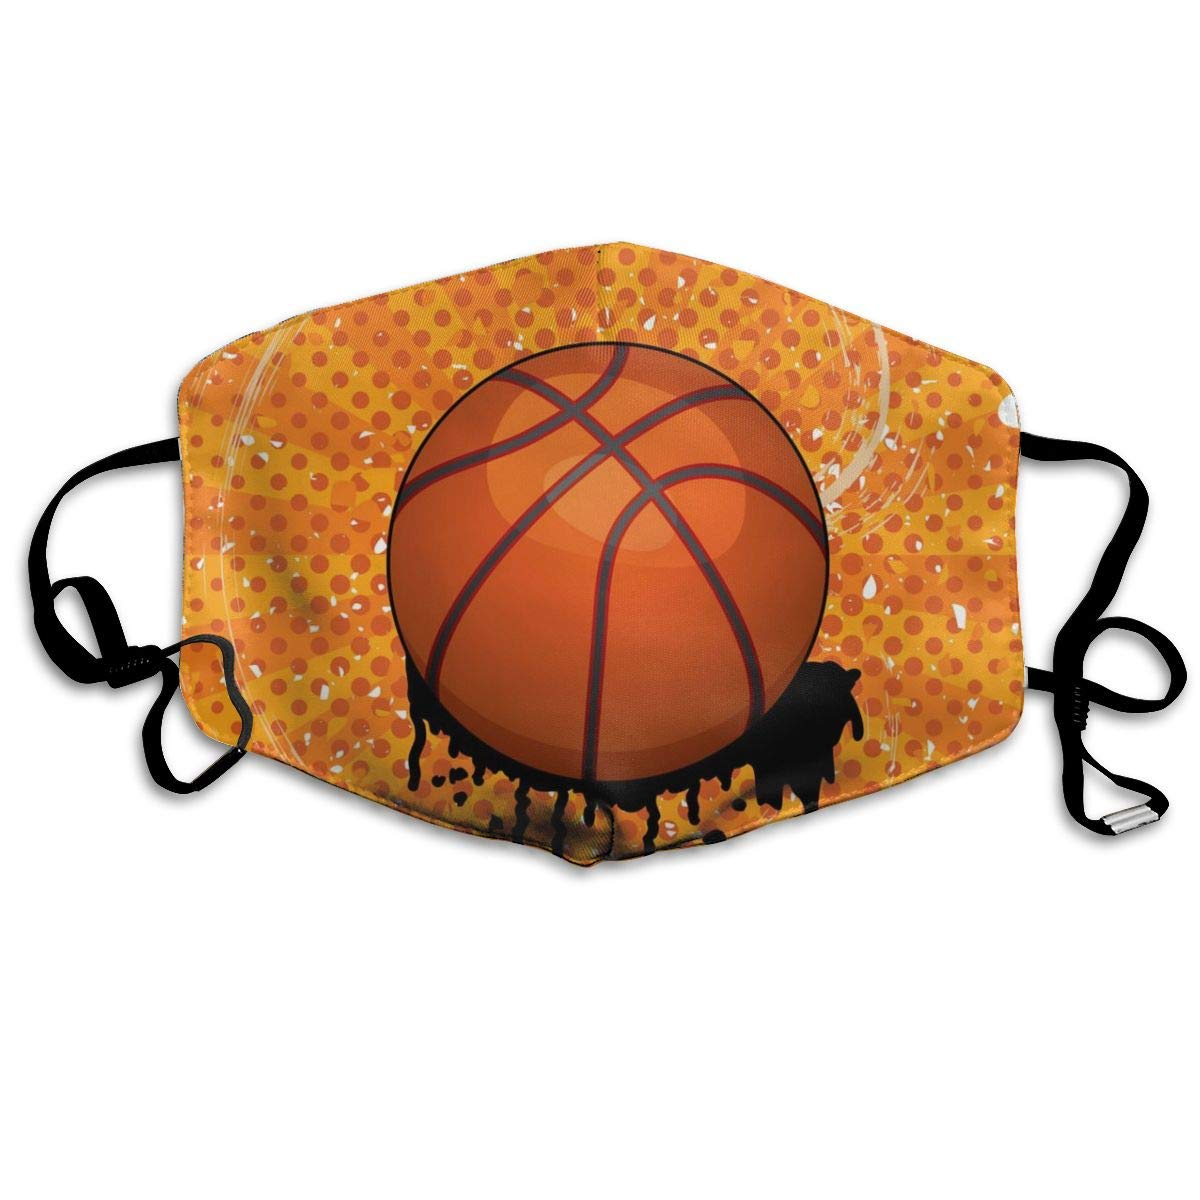 Mouth Mask For Daily Dress Up, Basket Ball Anti-dust Mouth-Muffle, Washable Reusable Holiday Half Face Masks For Mens And Womens